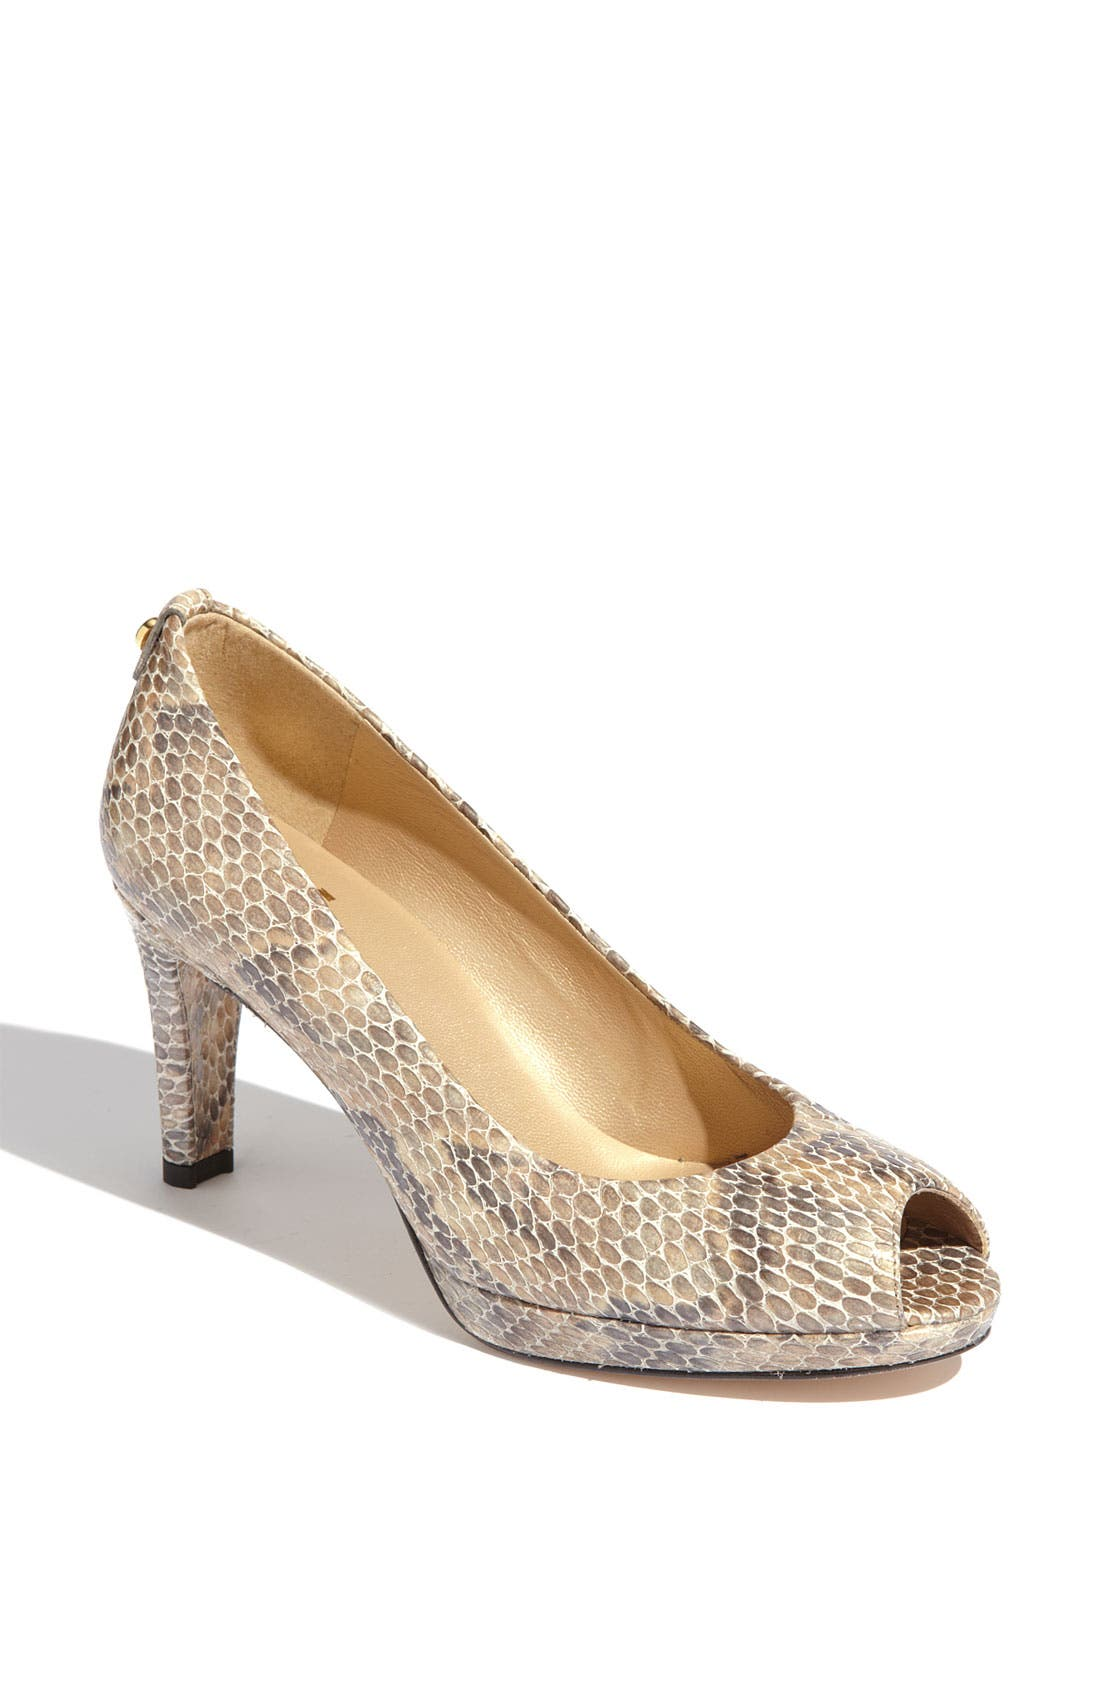 Alternate Image 1 Selected - Stuart Weitzman 'Logoplainfield' Pump